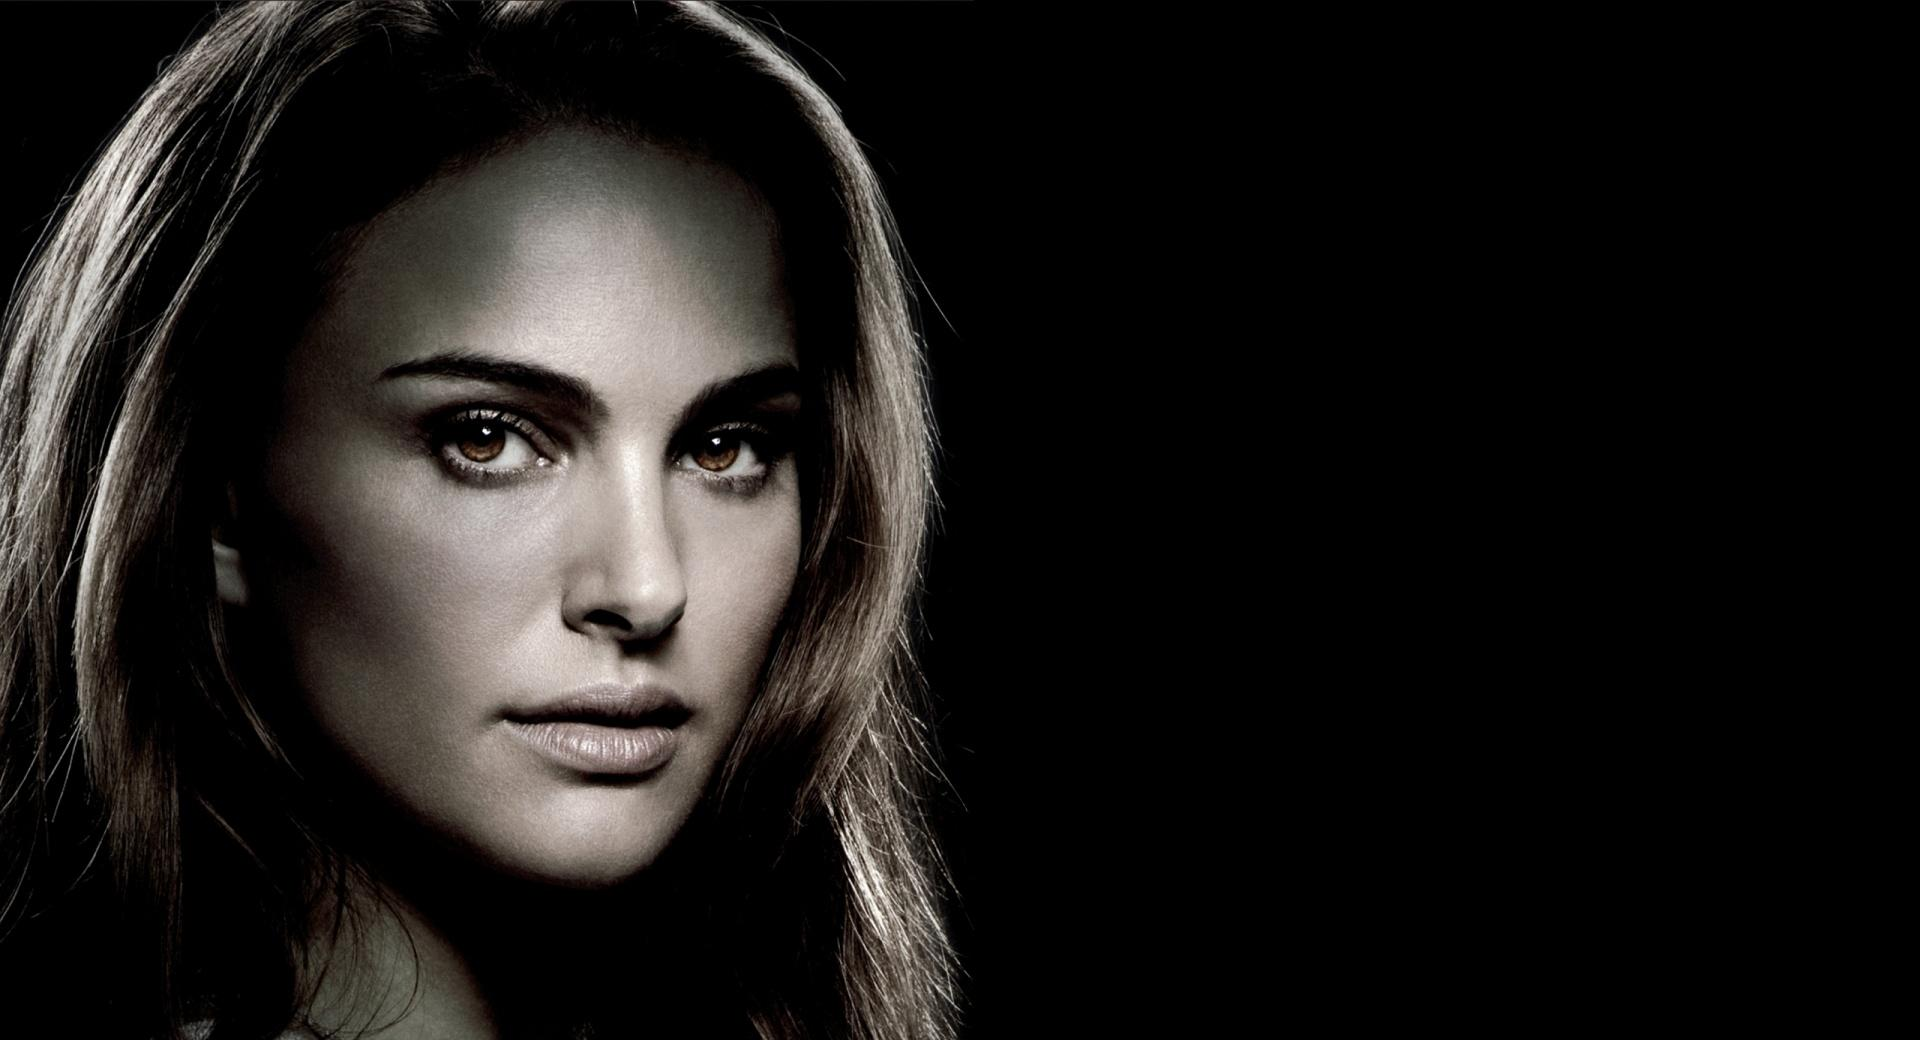 Thor Movie, Natalie Portman As Jane Foster wallpapers HD quality